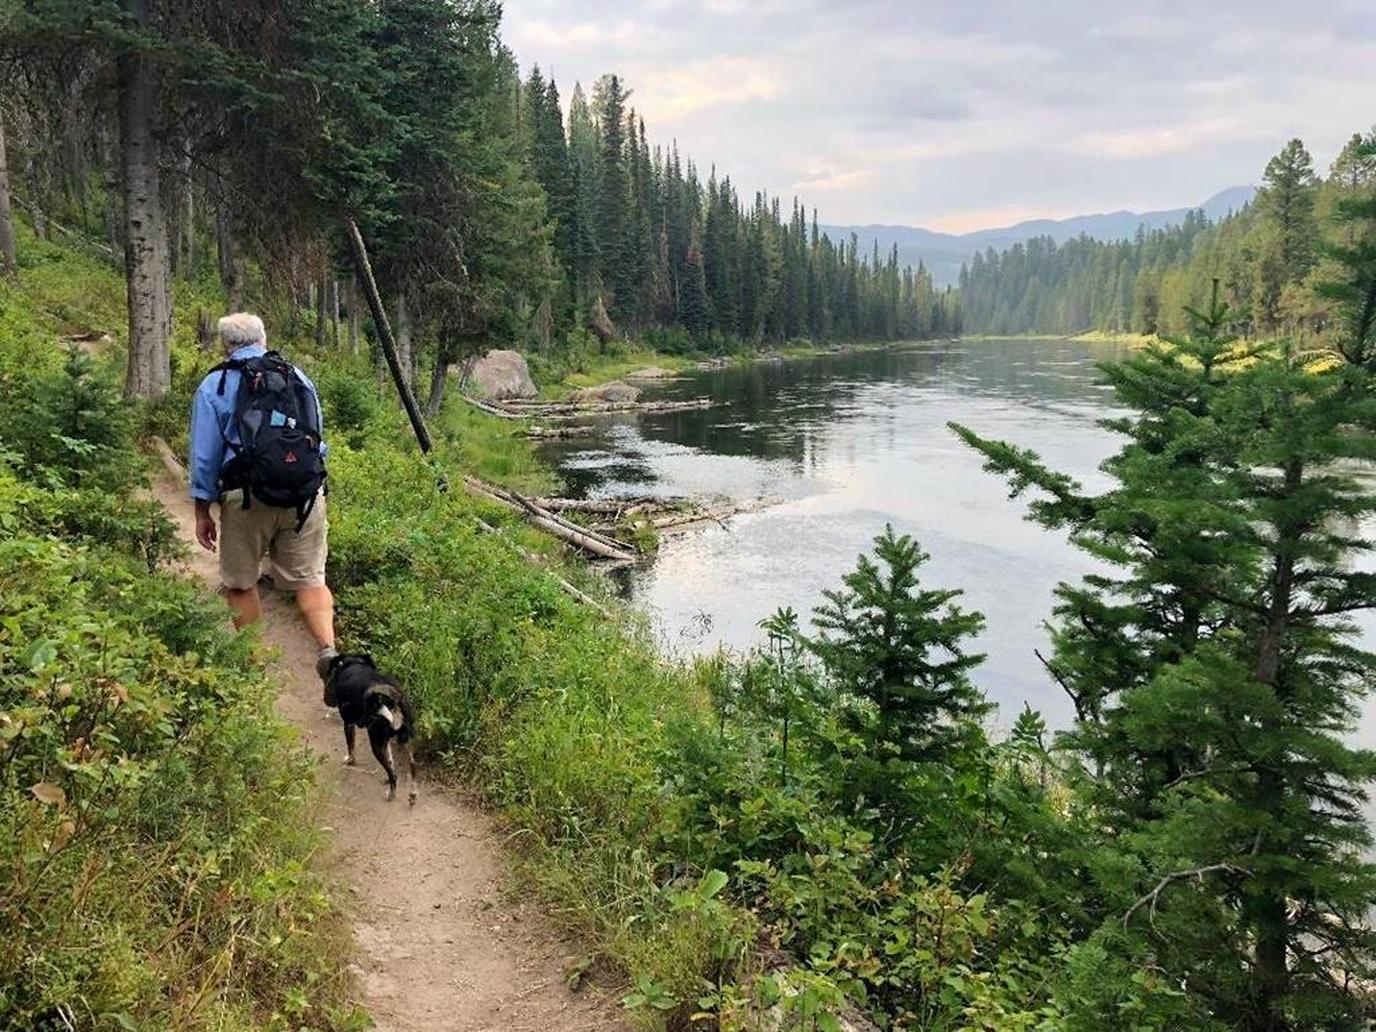 Man and Dog Walk on a Trail at the Pet-Friendly Yellowstone National Park.